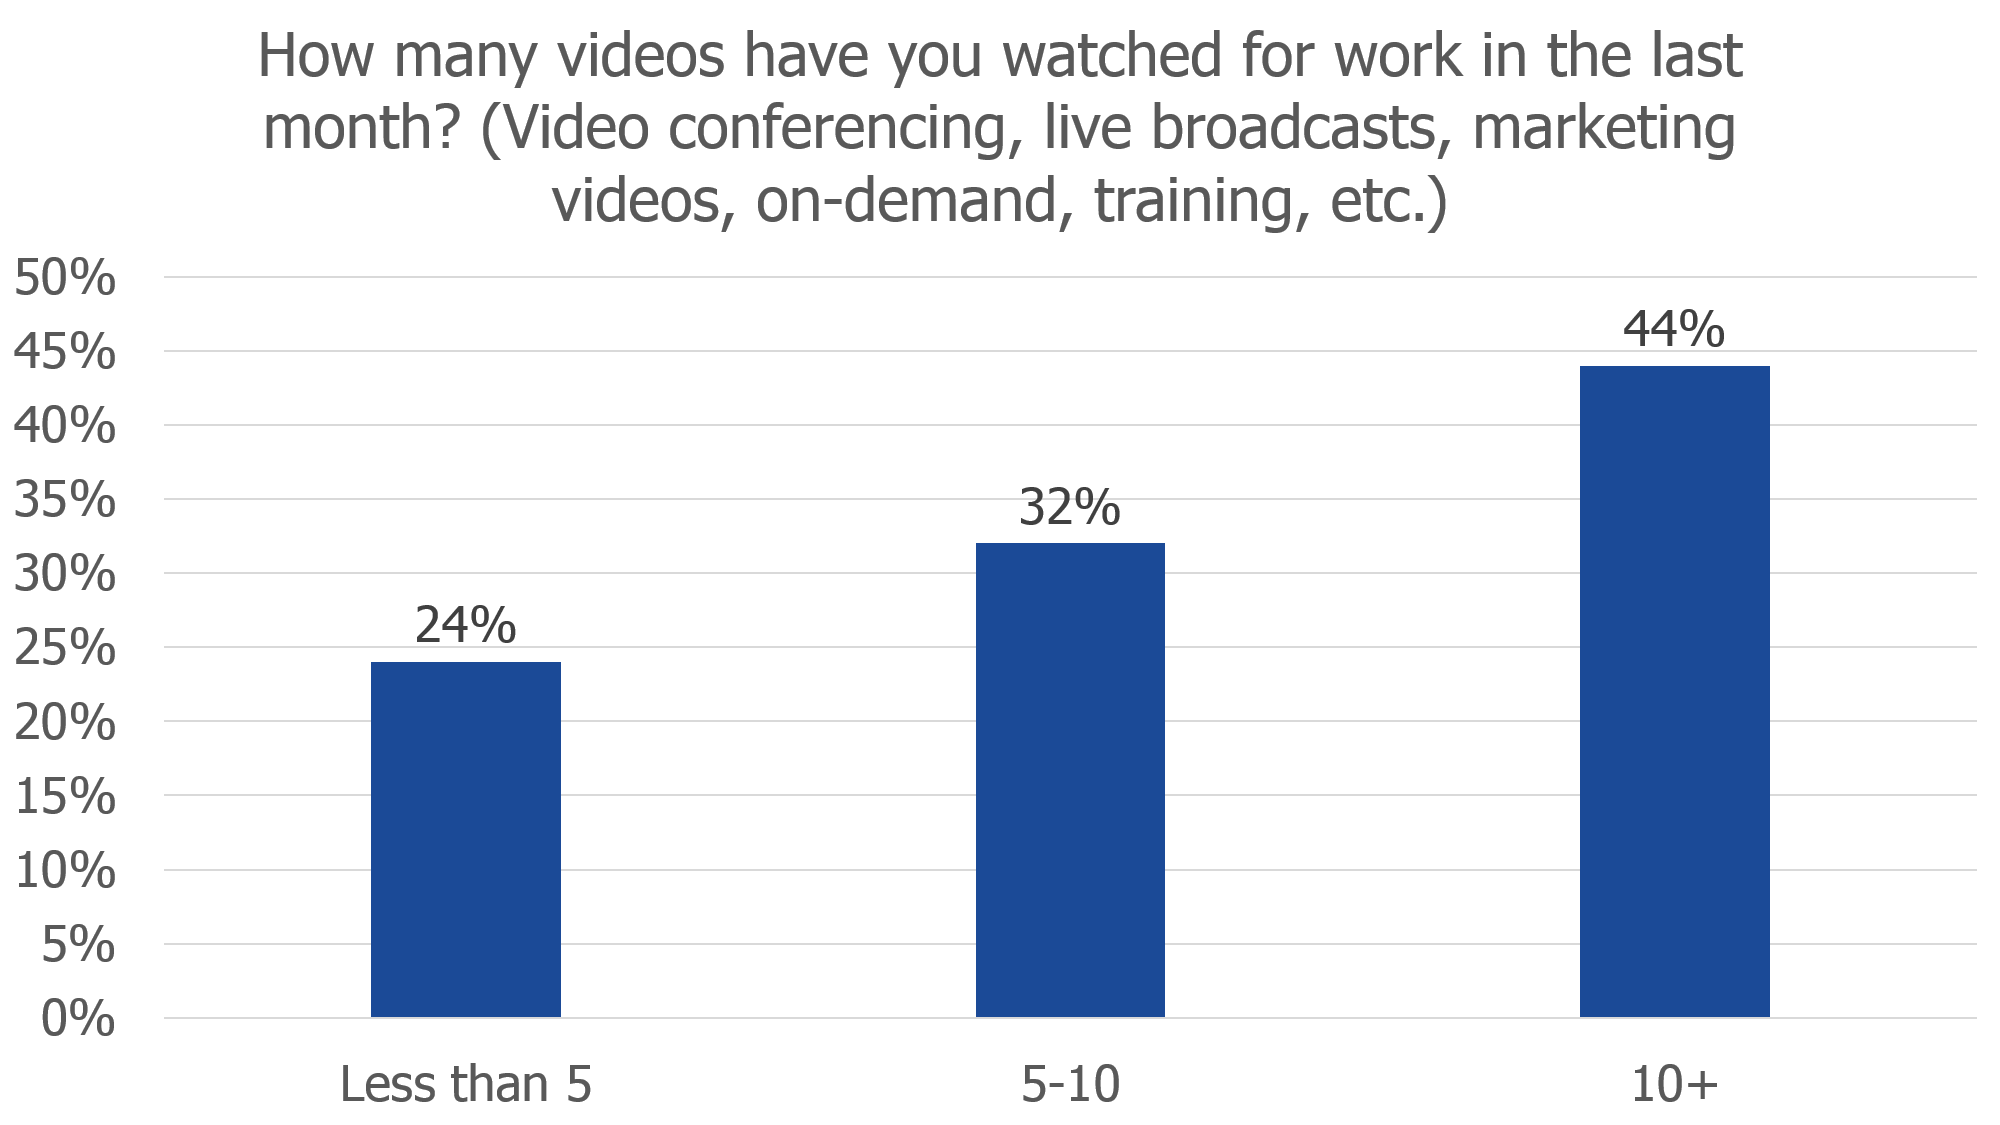 number of videos watched for work